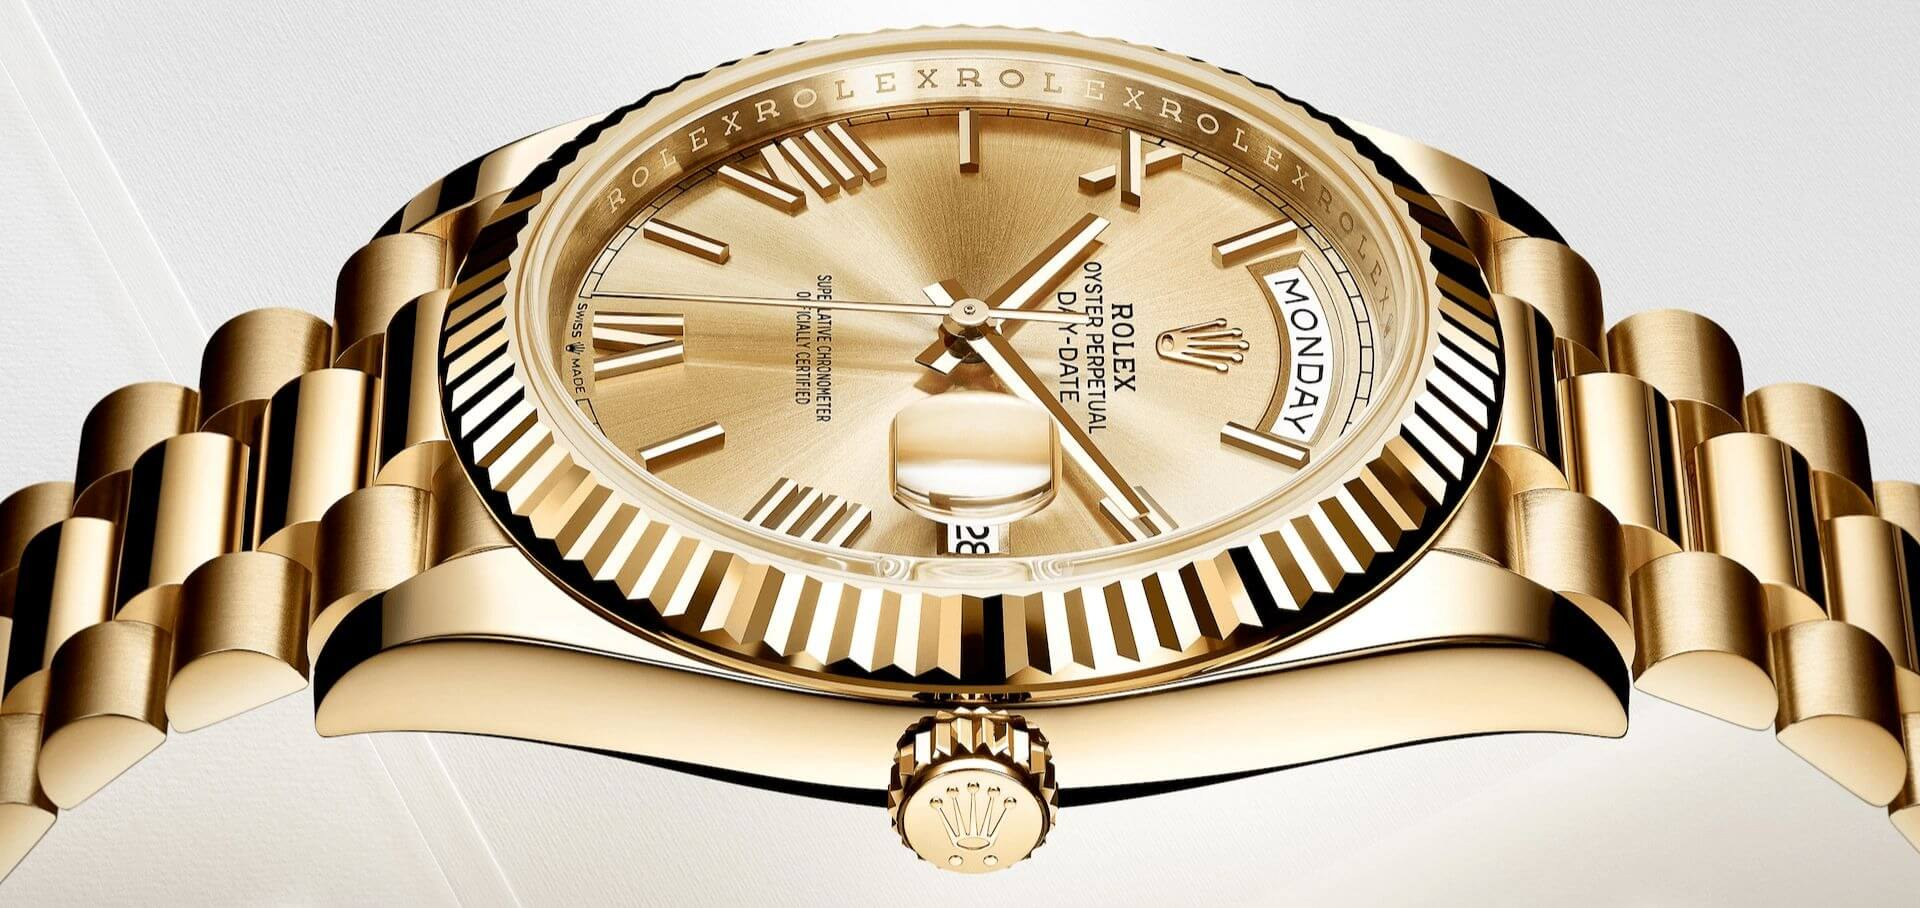 How much gold is in a solid gold Rolex?